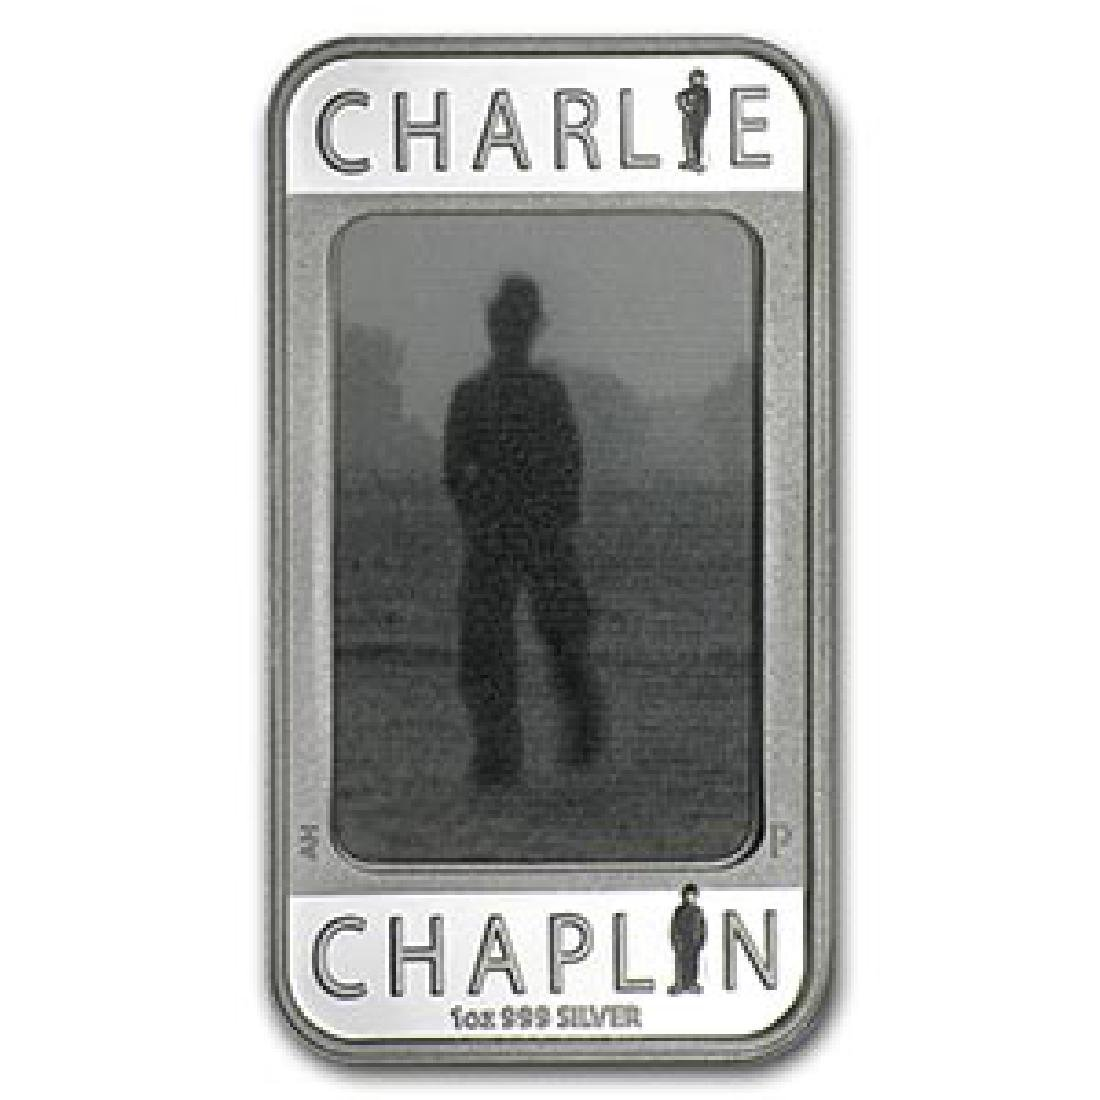 2014 1 oz Silver Charlie Chaplin 100 Years of Laughter